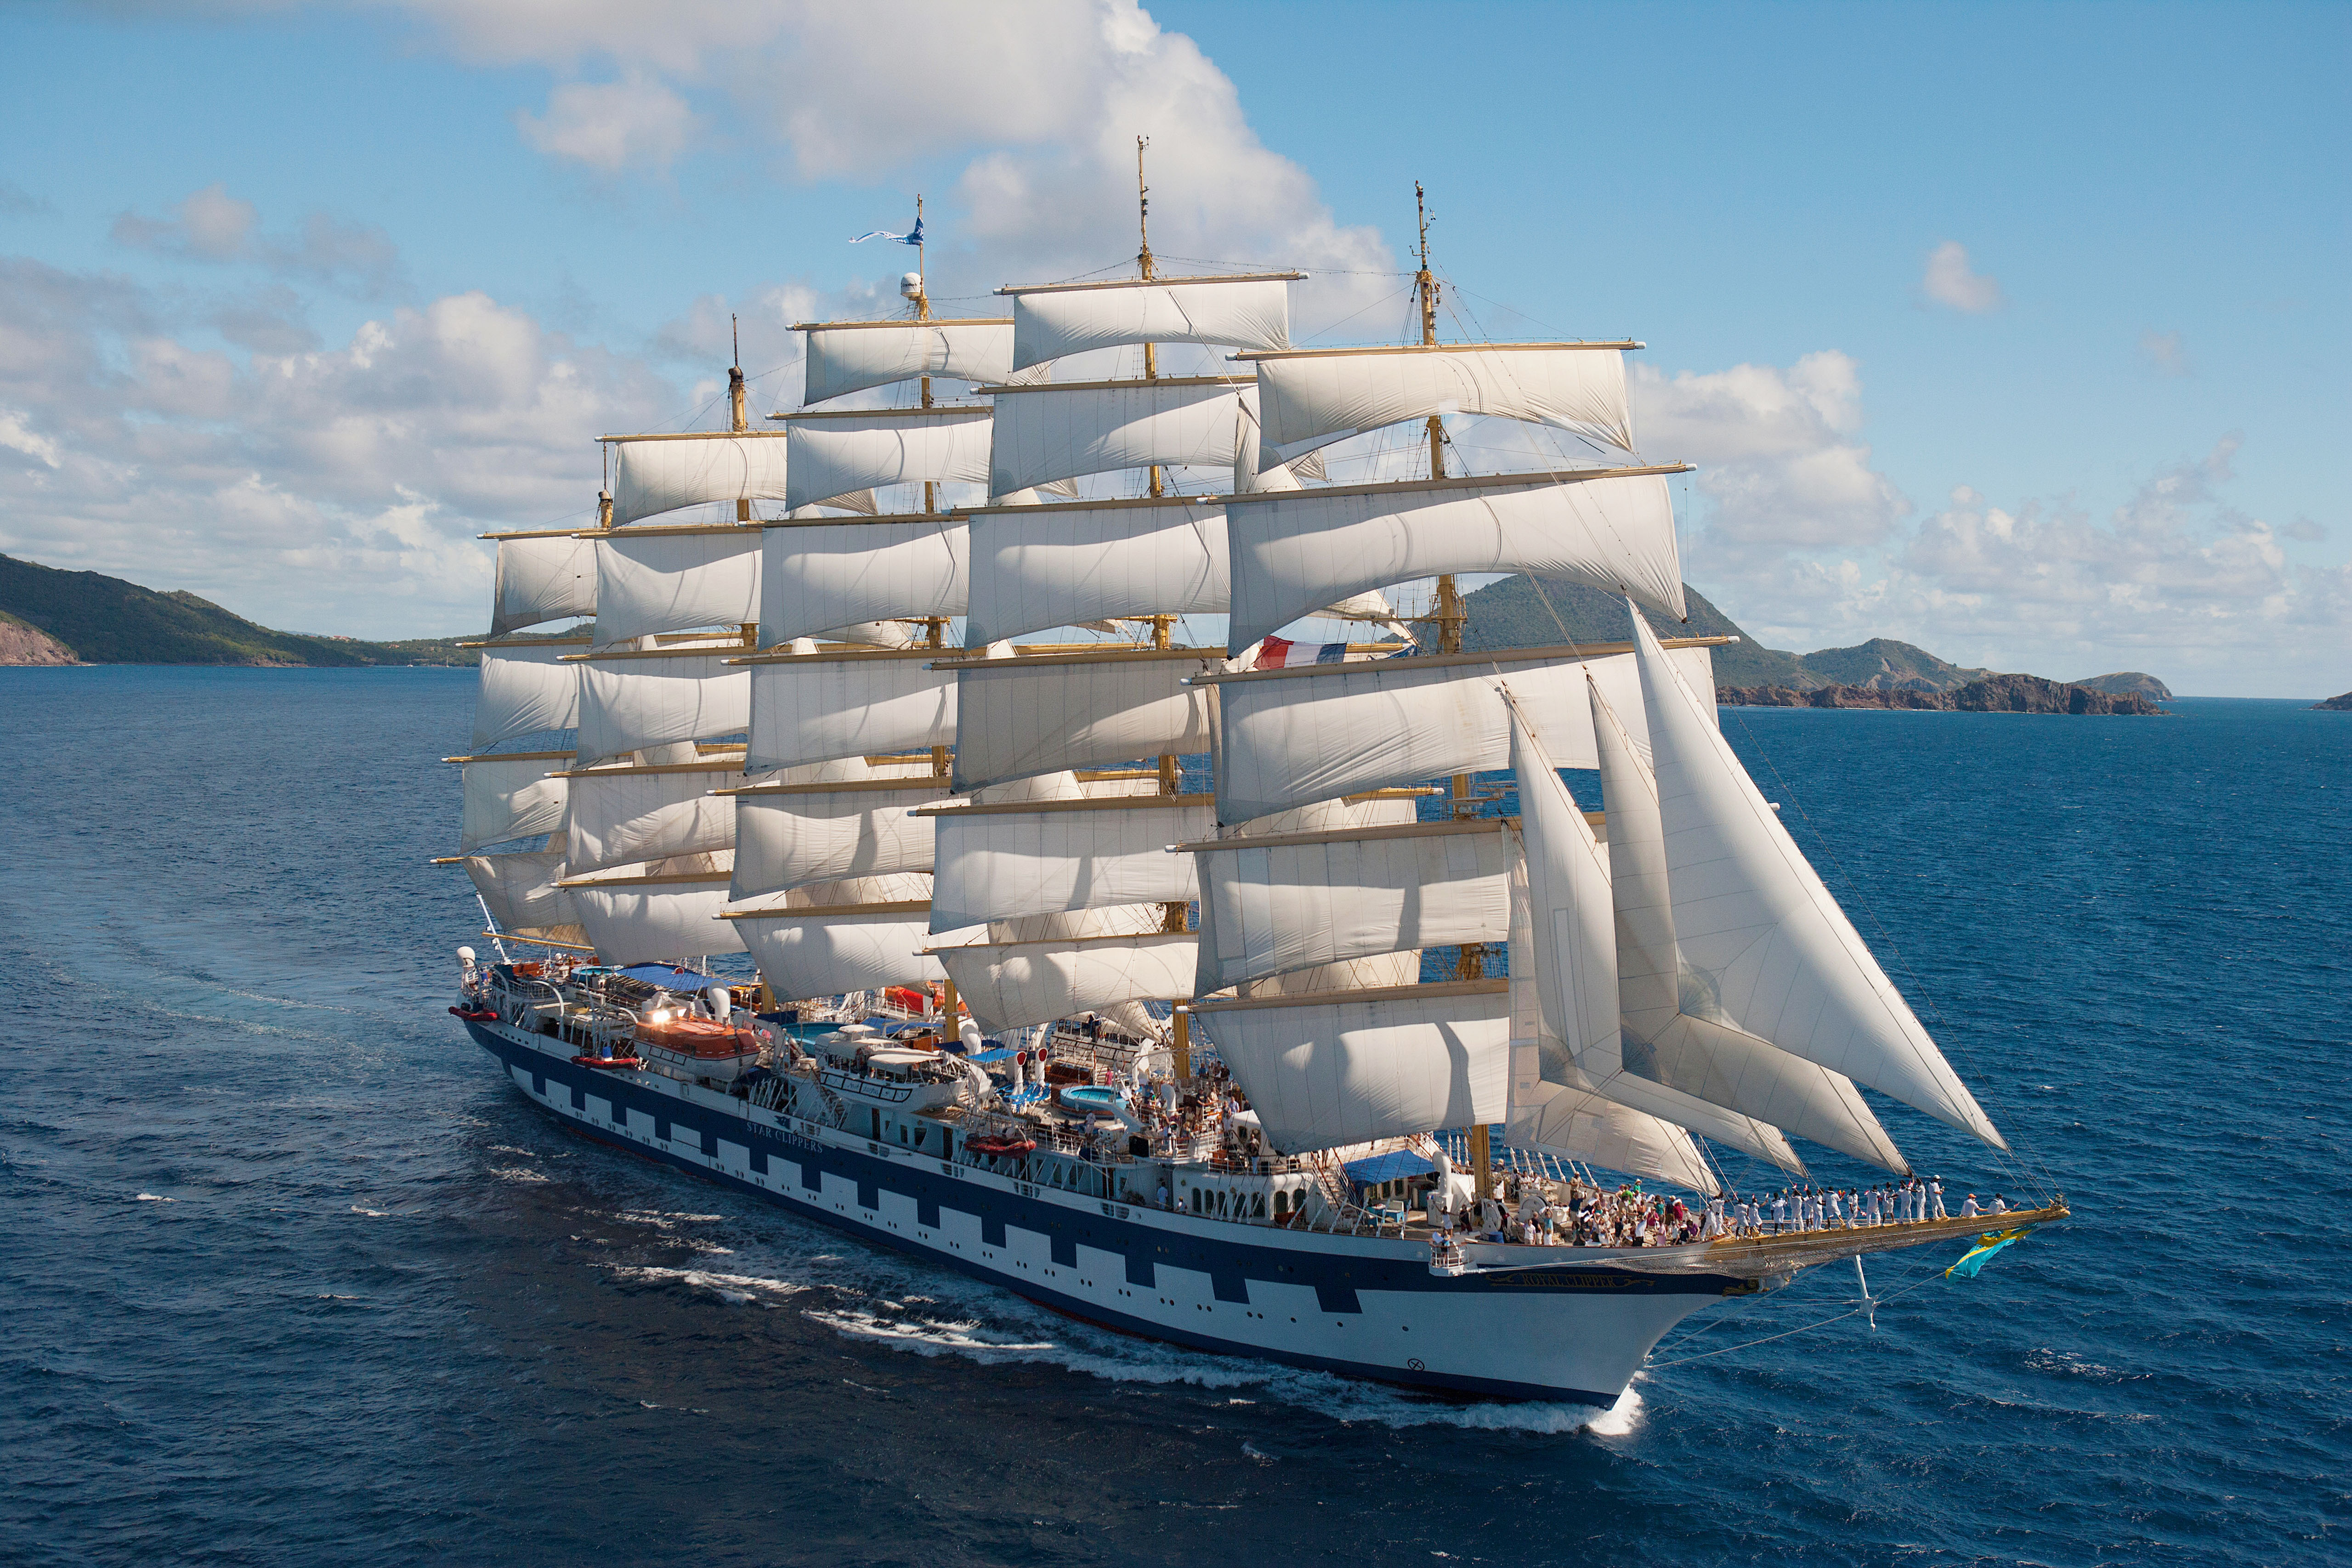 The world's largest sailing ship (The Royal Clipper) : pics